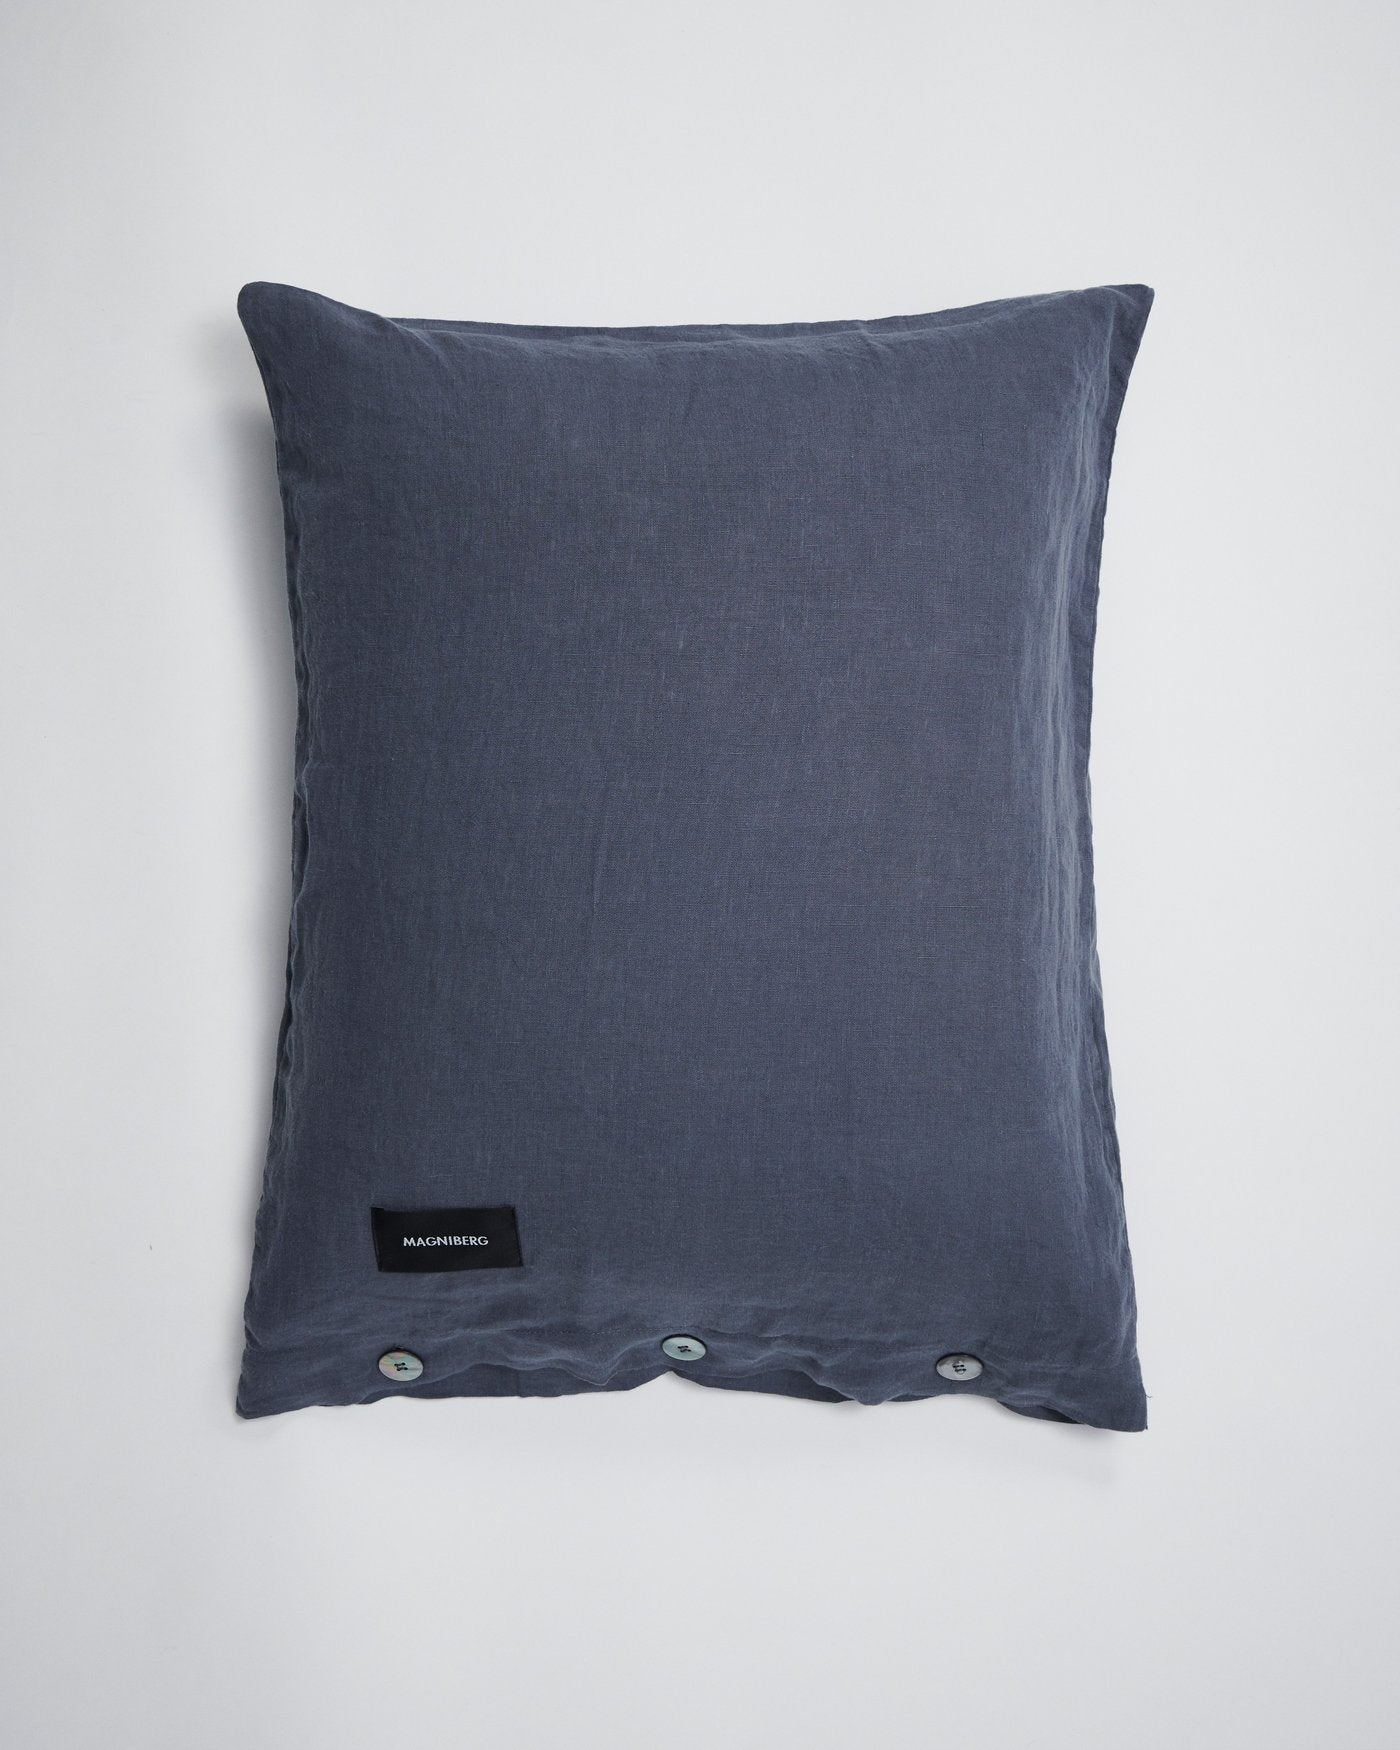 Magniberg Mother Pillow Case Linen Bluish Grey